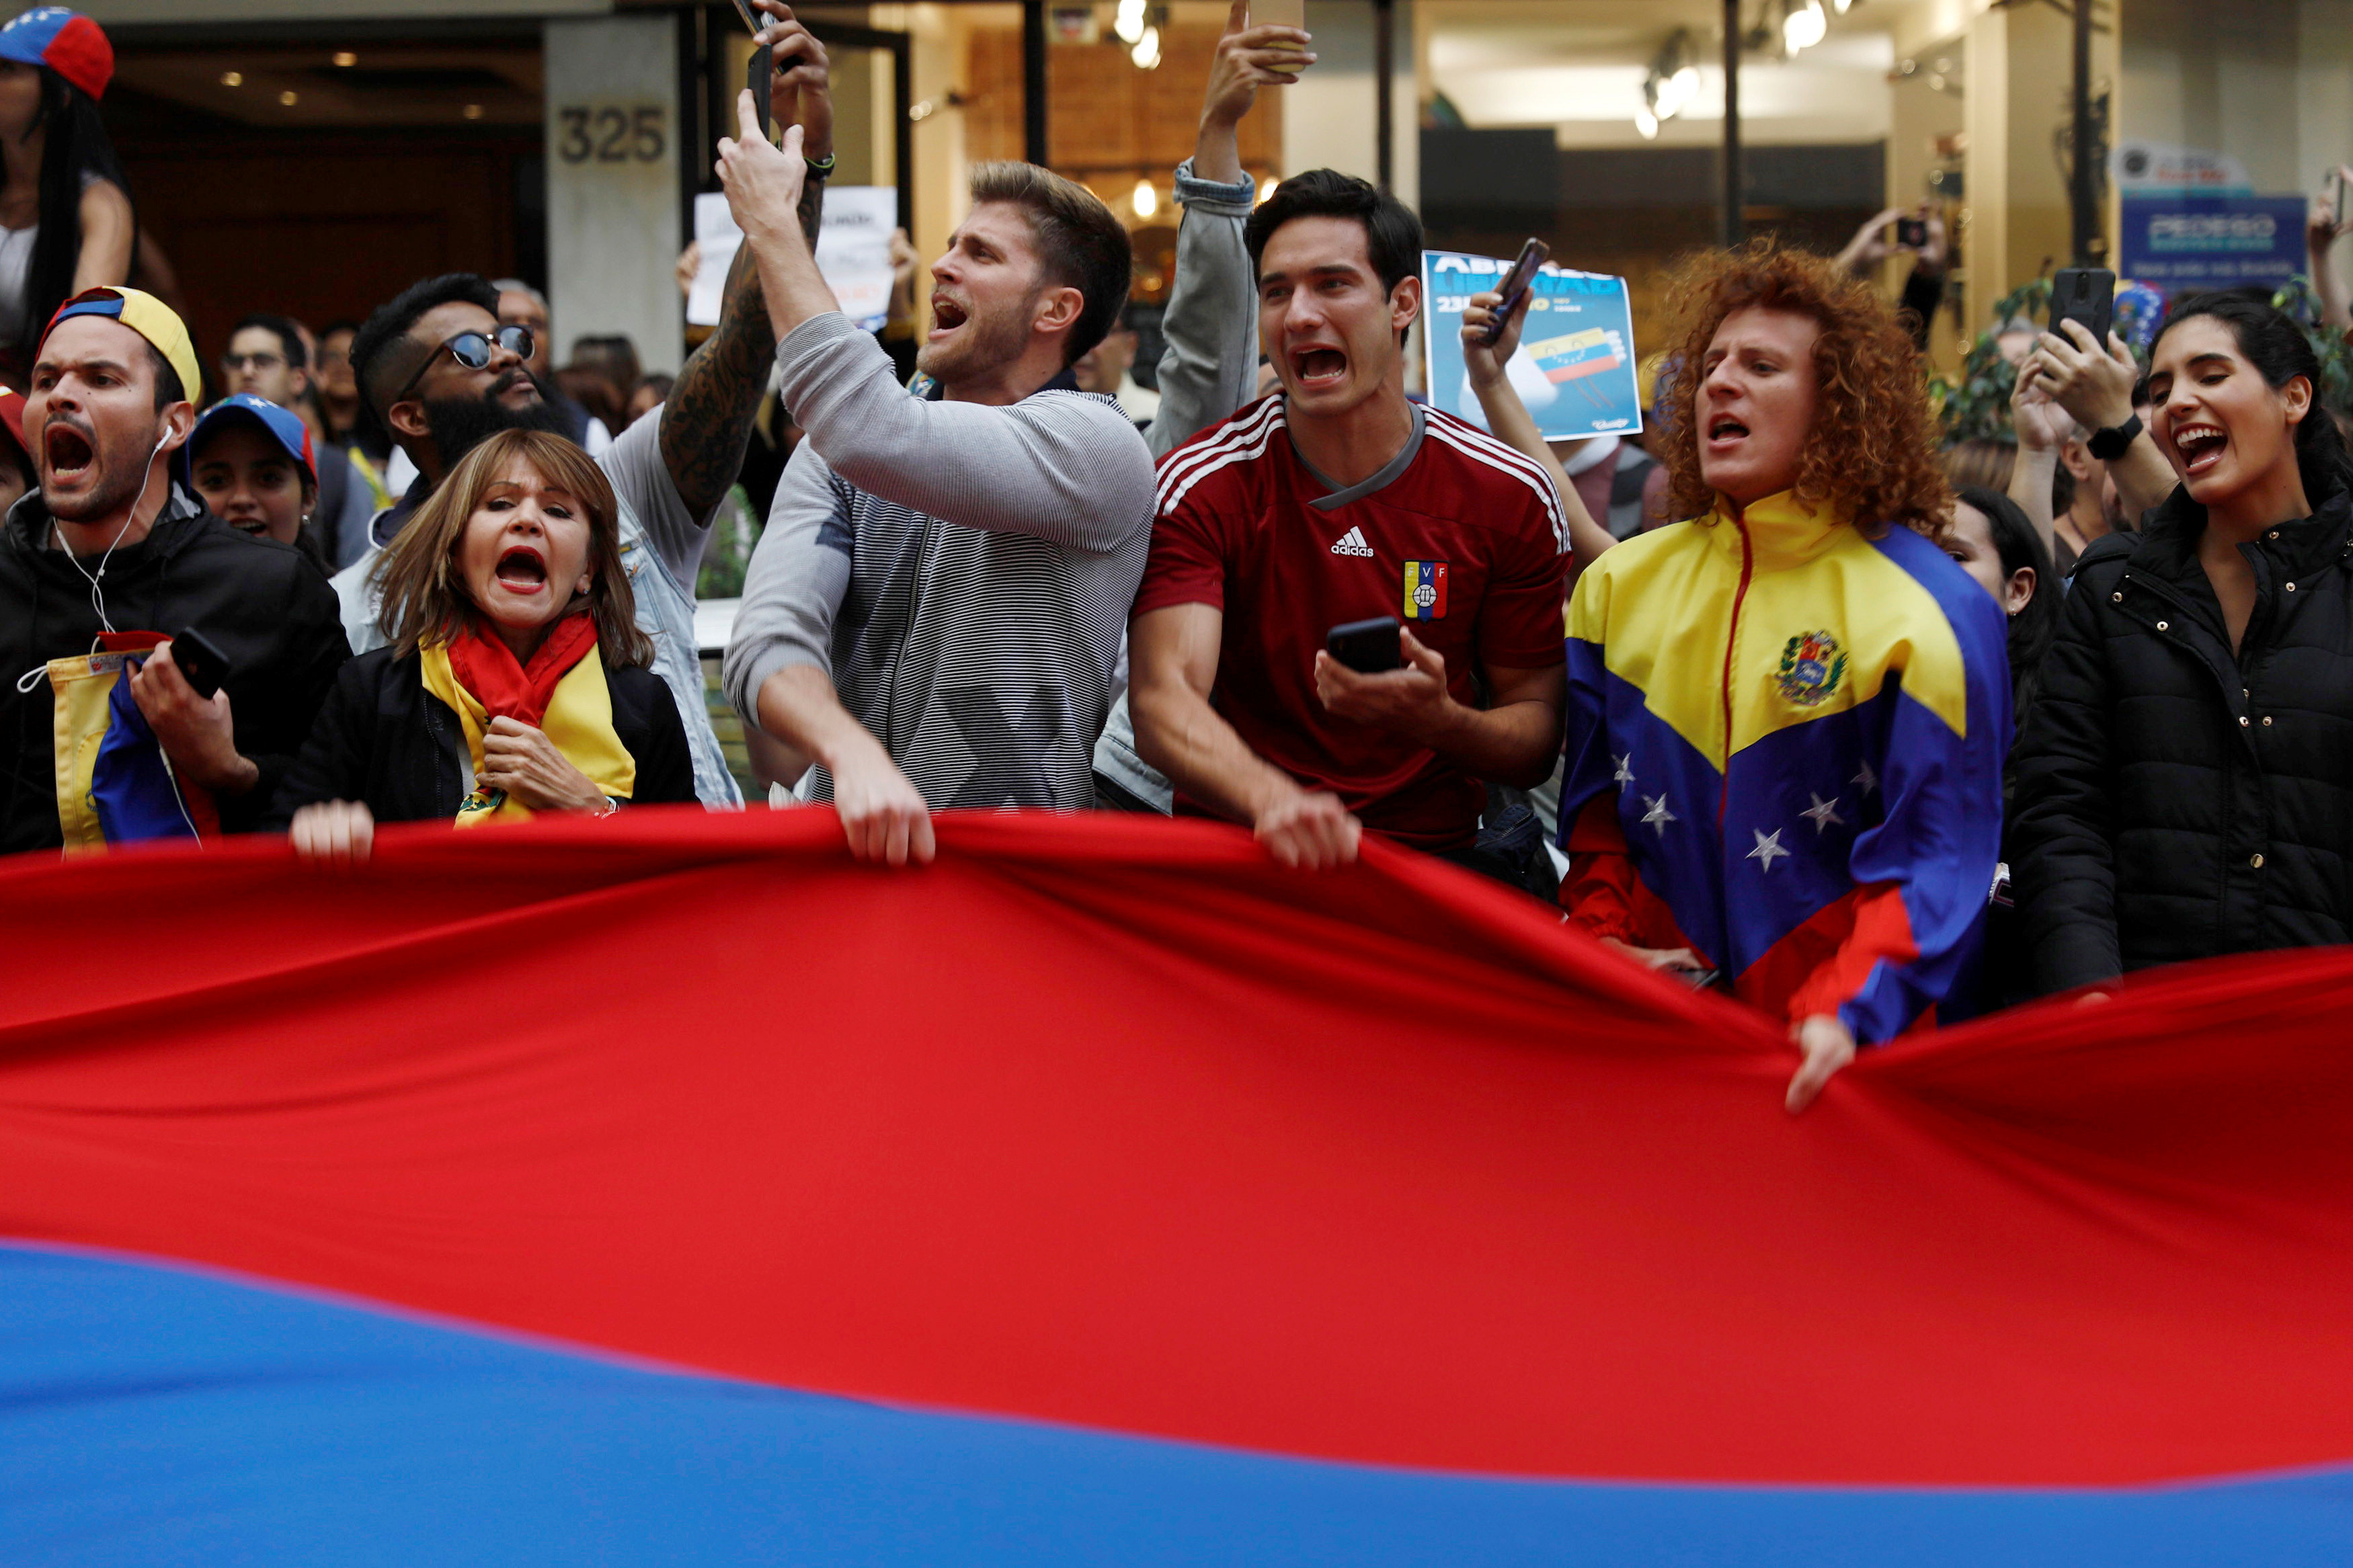 People hold a Venezuelan flag as they gather in support of Venezuela's opposition leader Juan Guaido outside the Embassy of Venezuela in Mexico City, Mexico January 23, 2019. REUTERS/Edgard Garrido